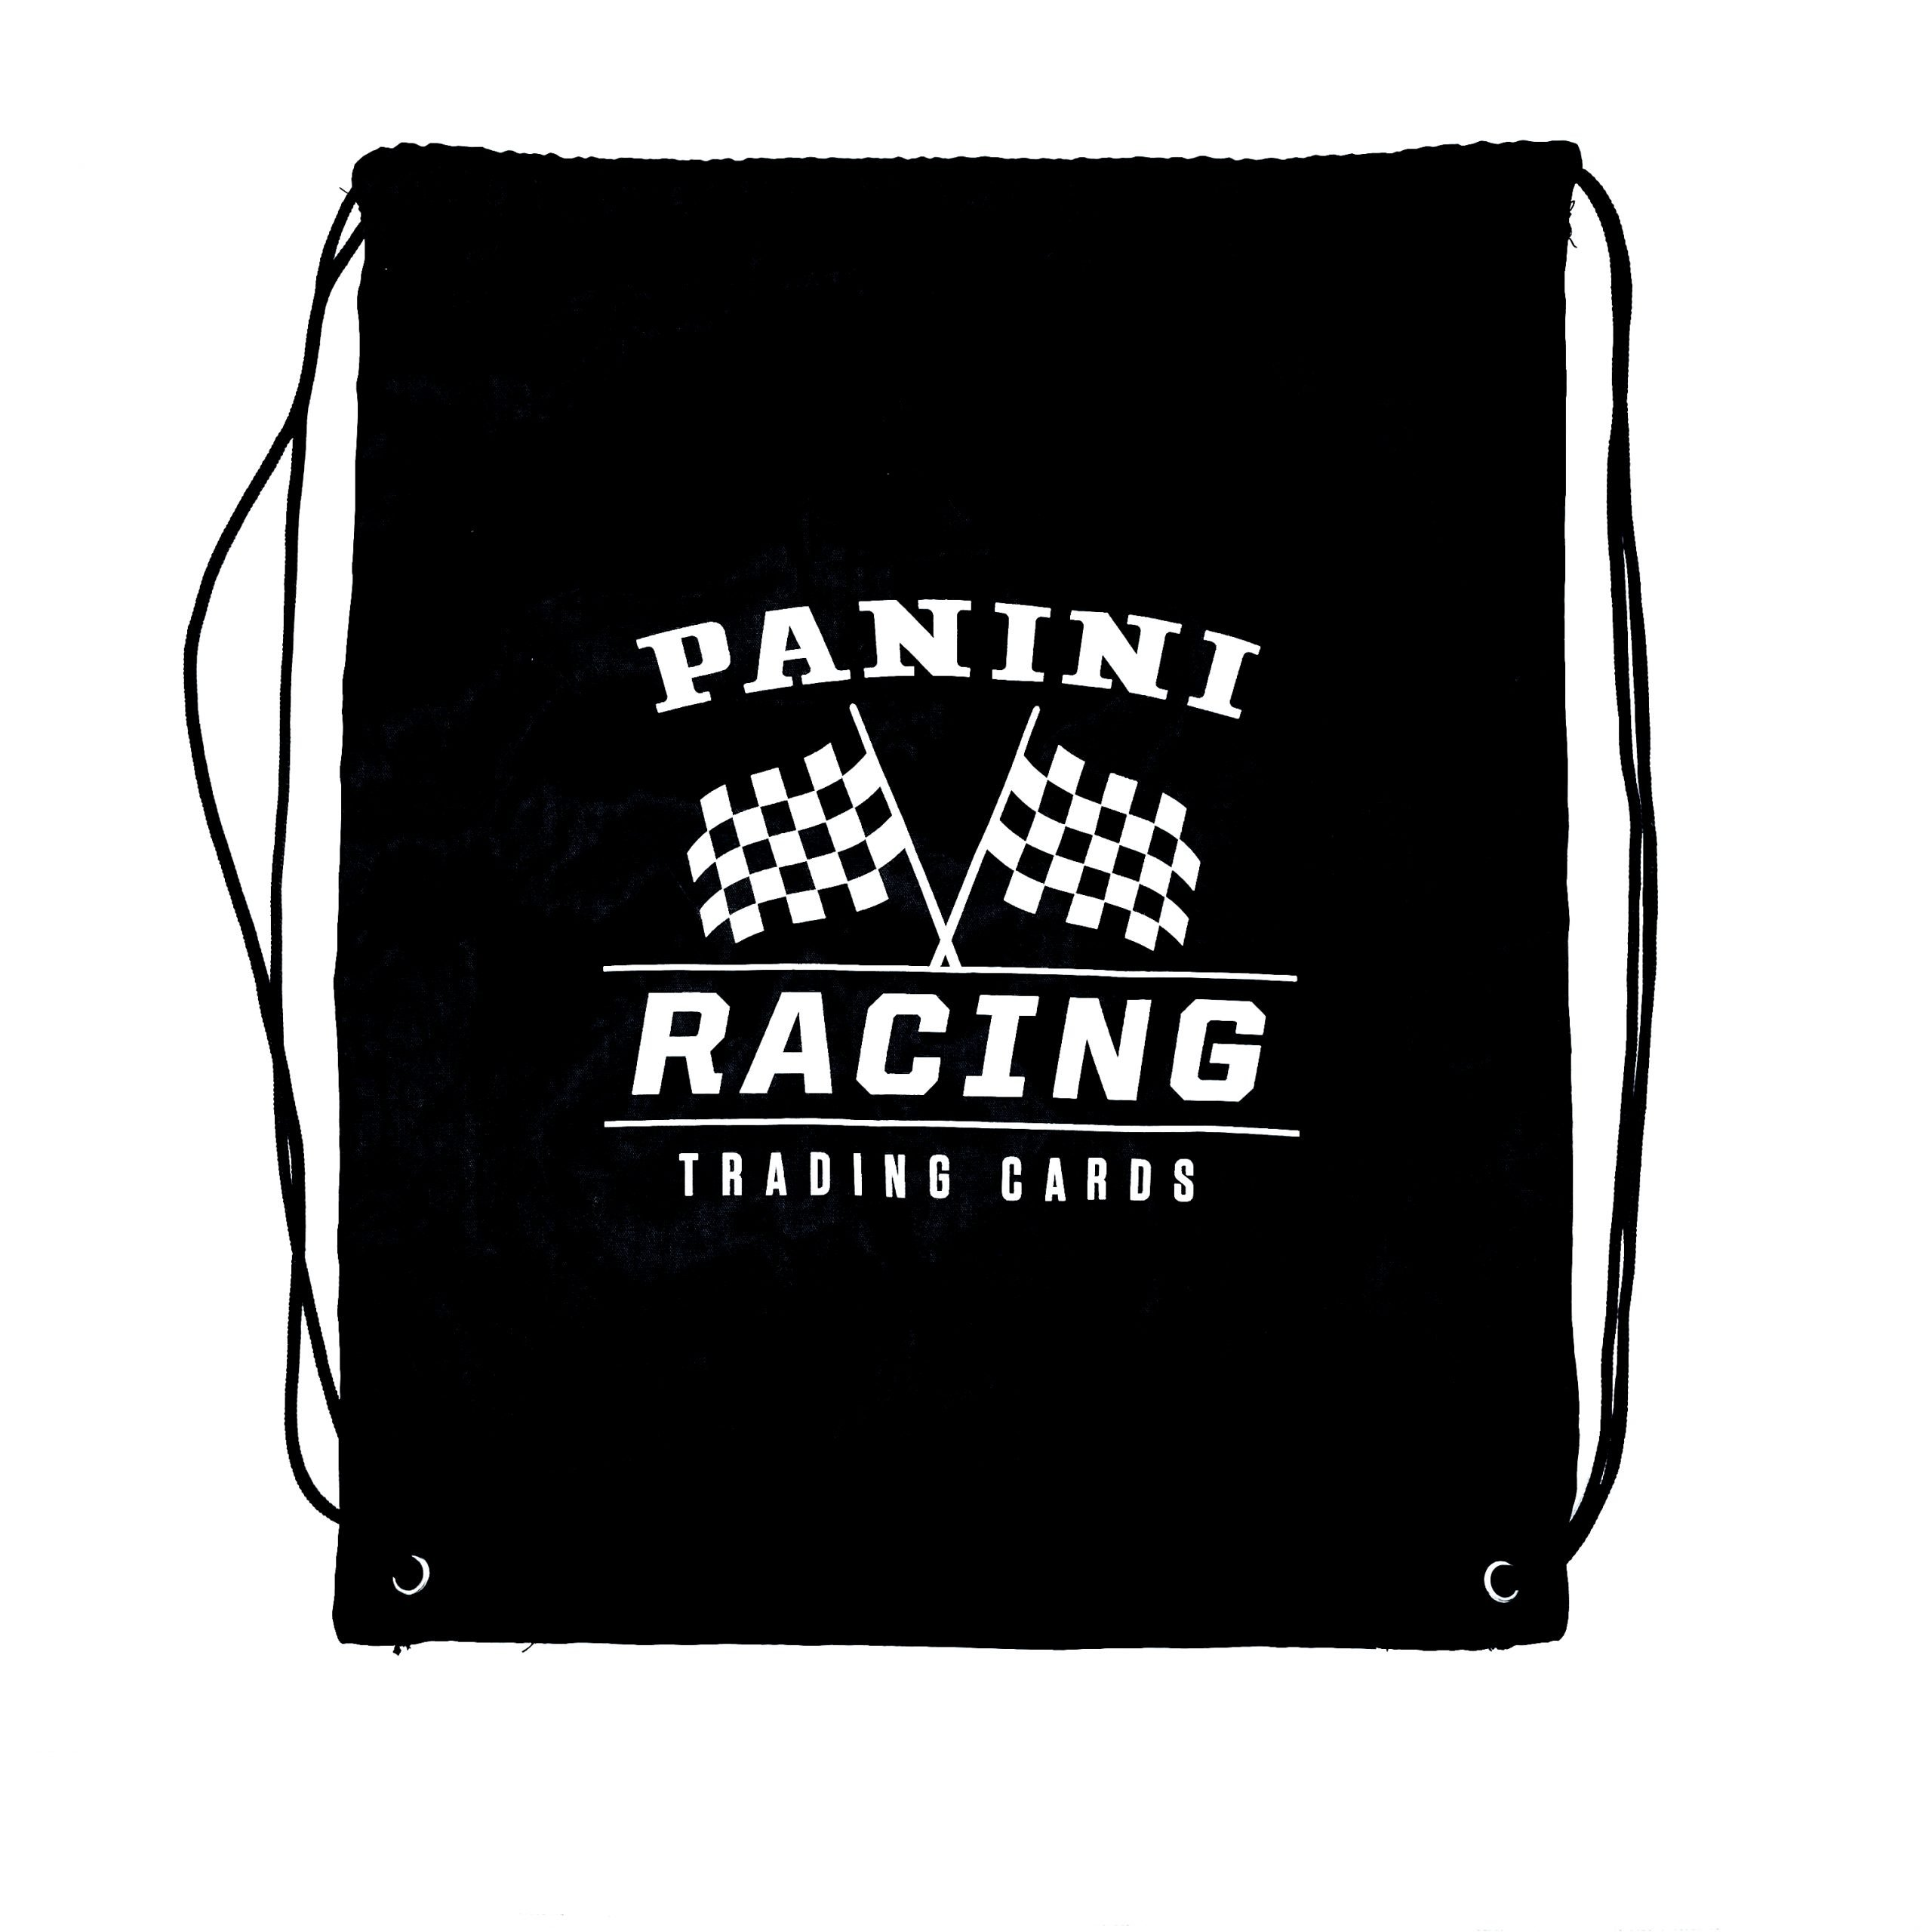 Panini Racing Drawstring Backpack